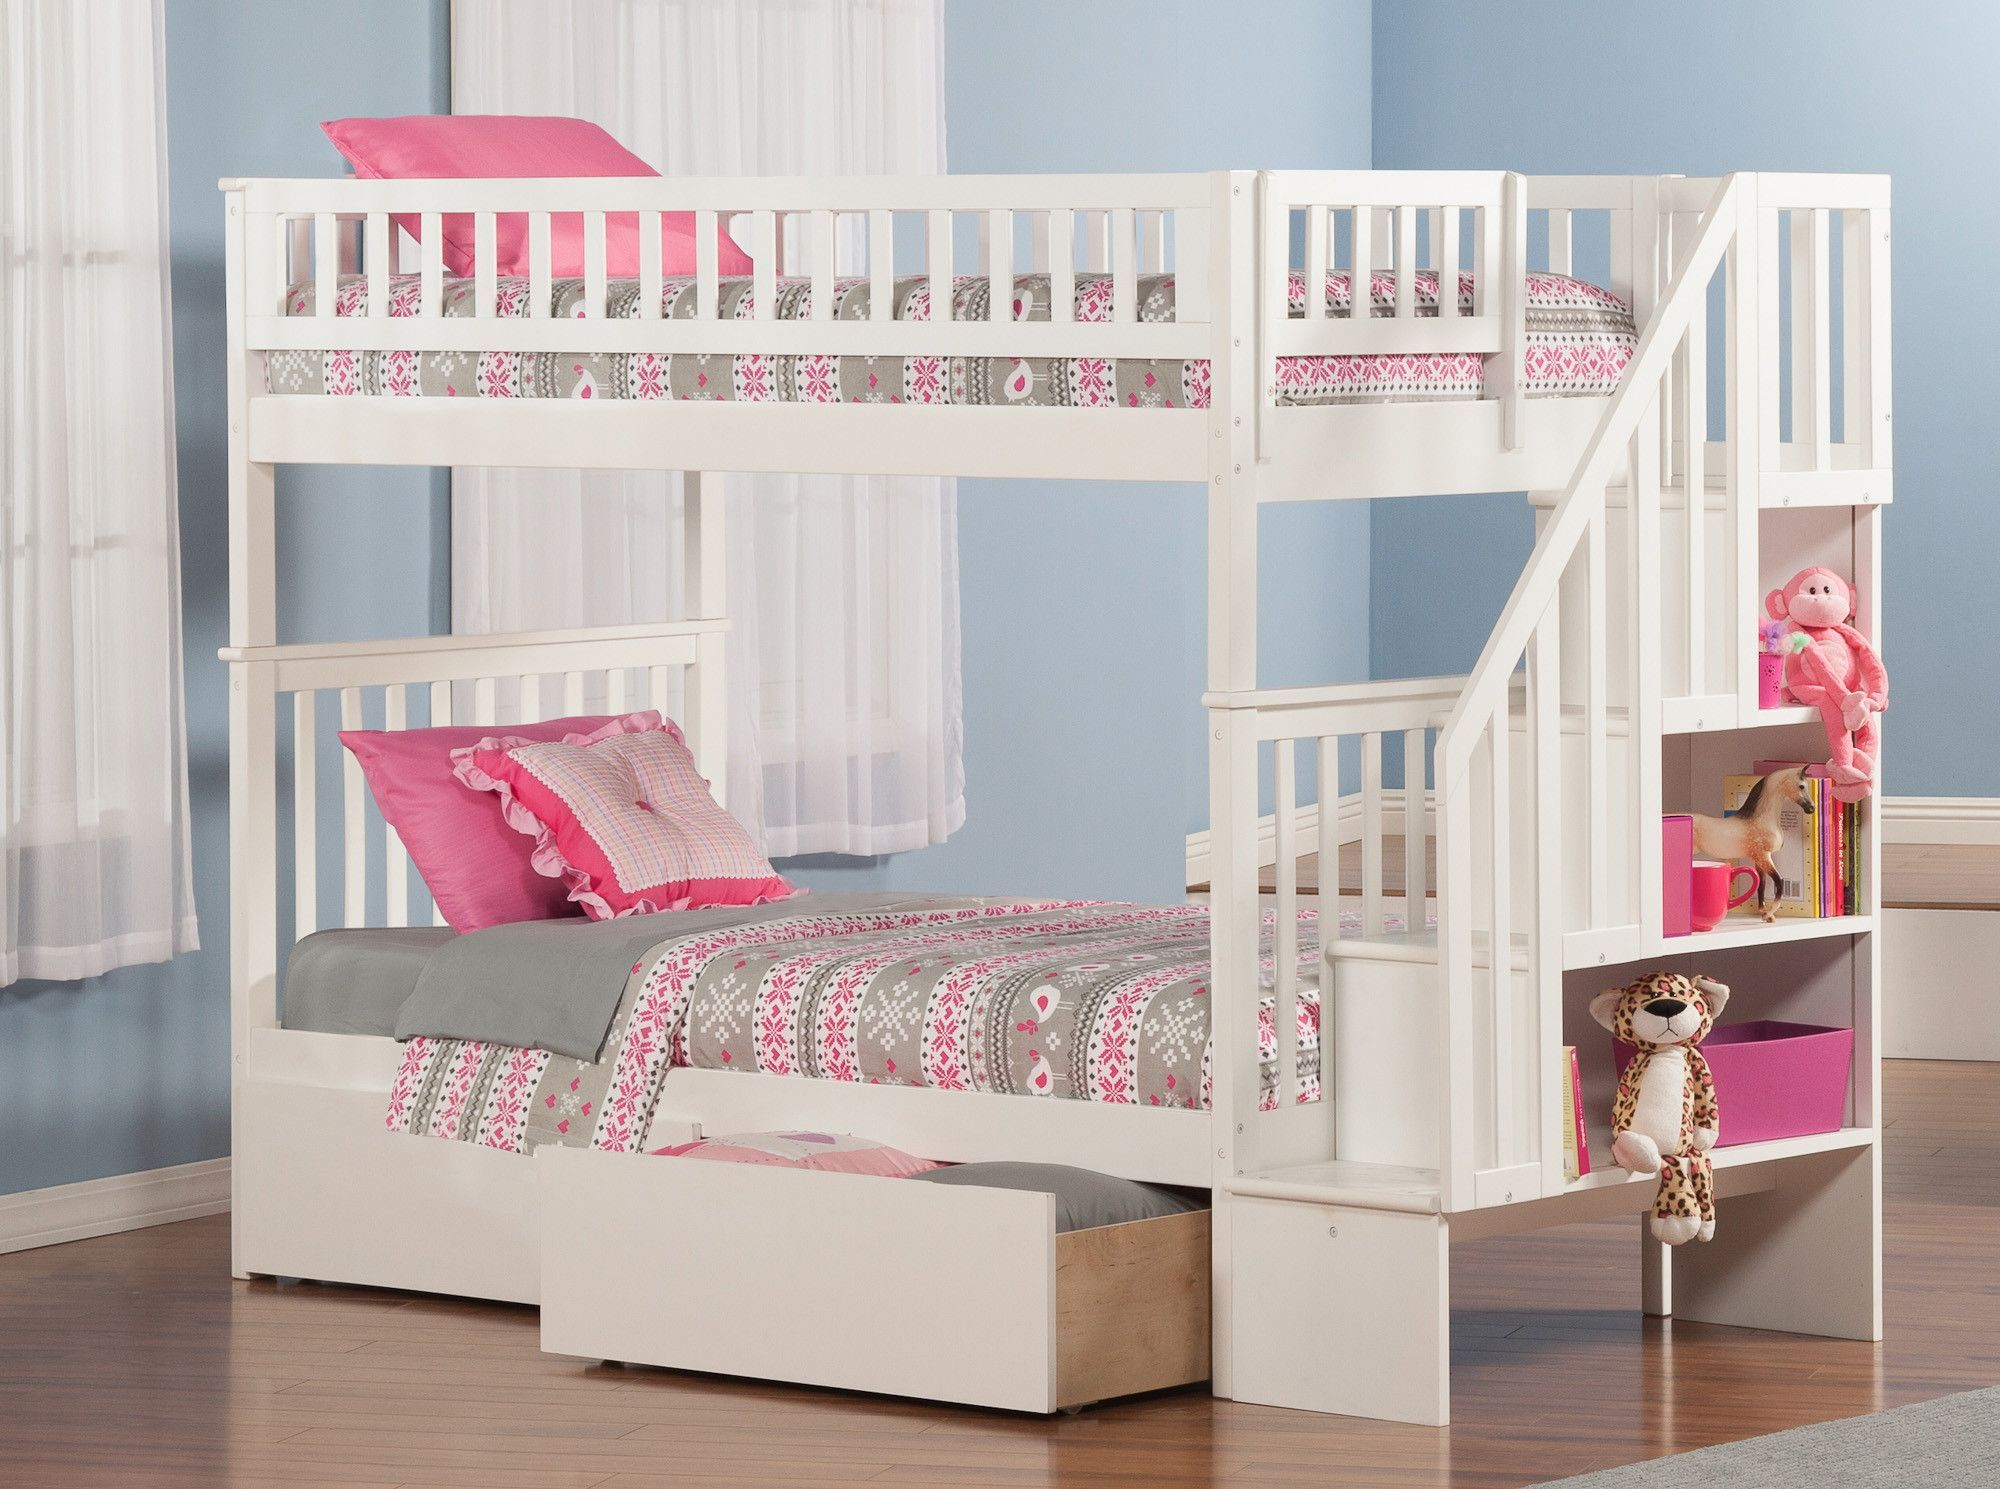 Woodland Twin Bunk Bed with Storage | Products | Pinterest